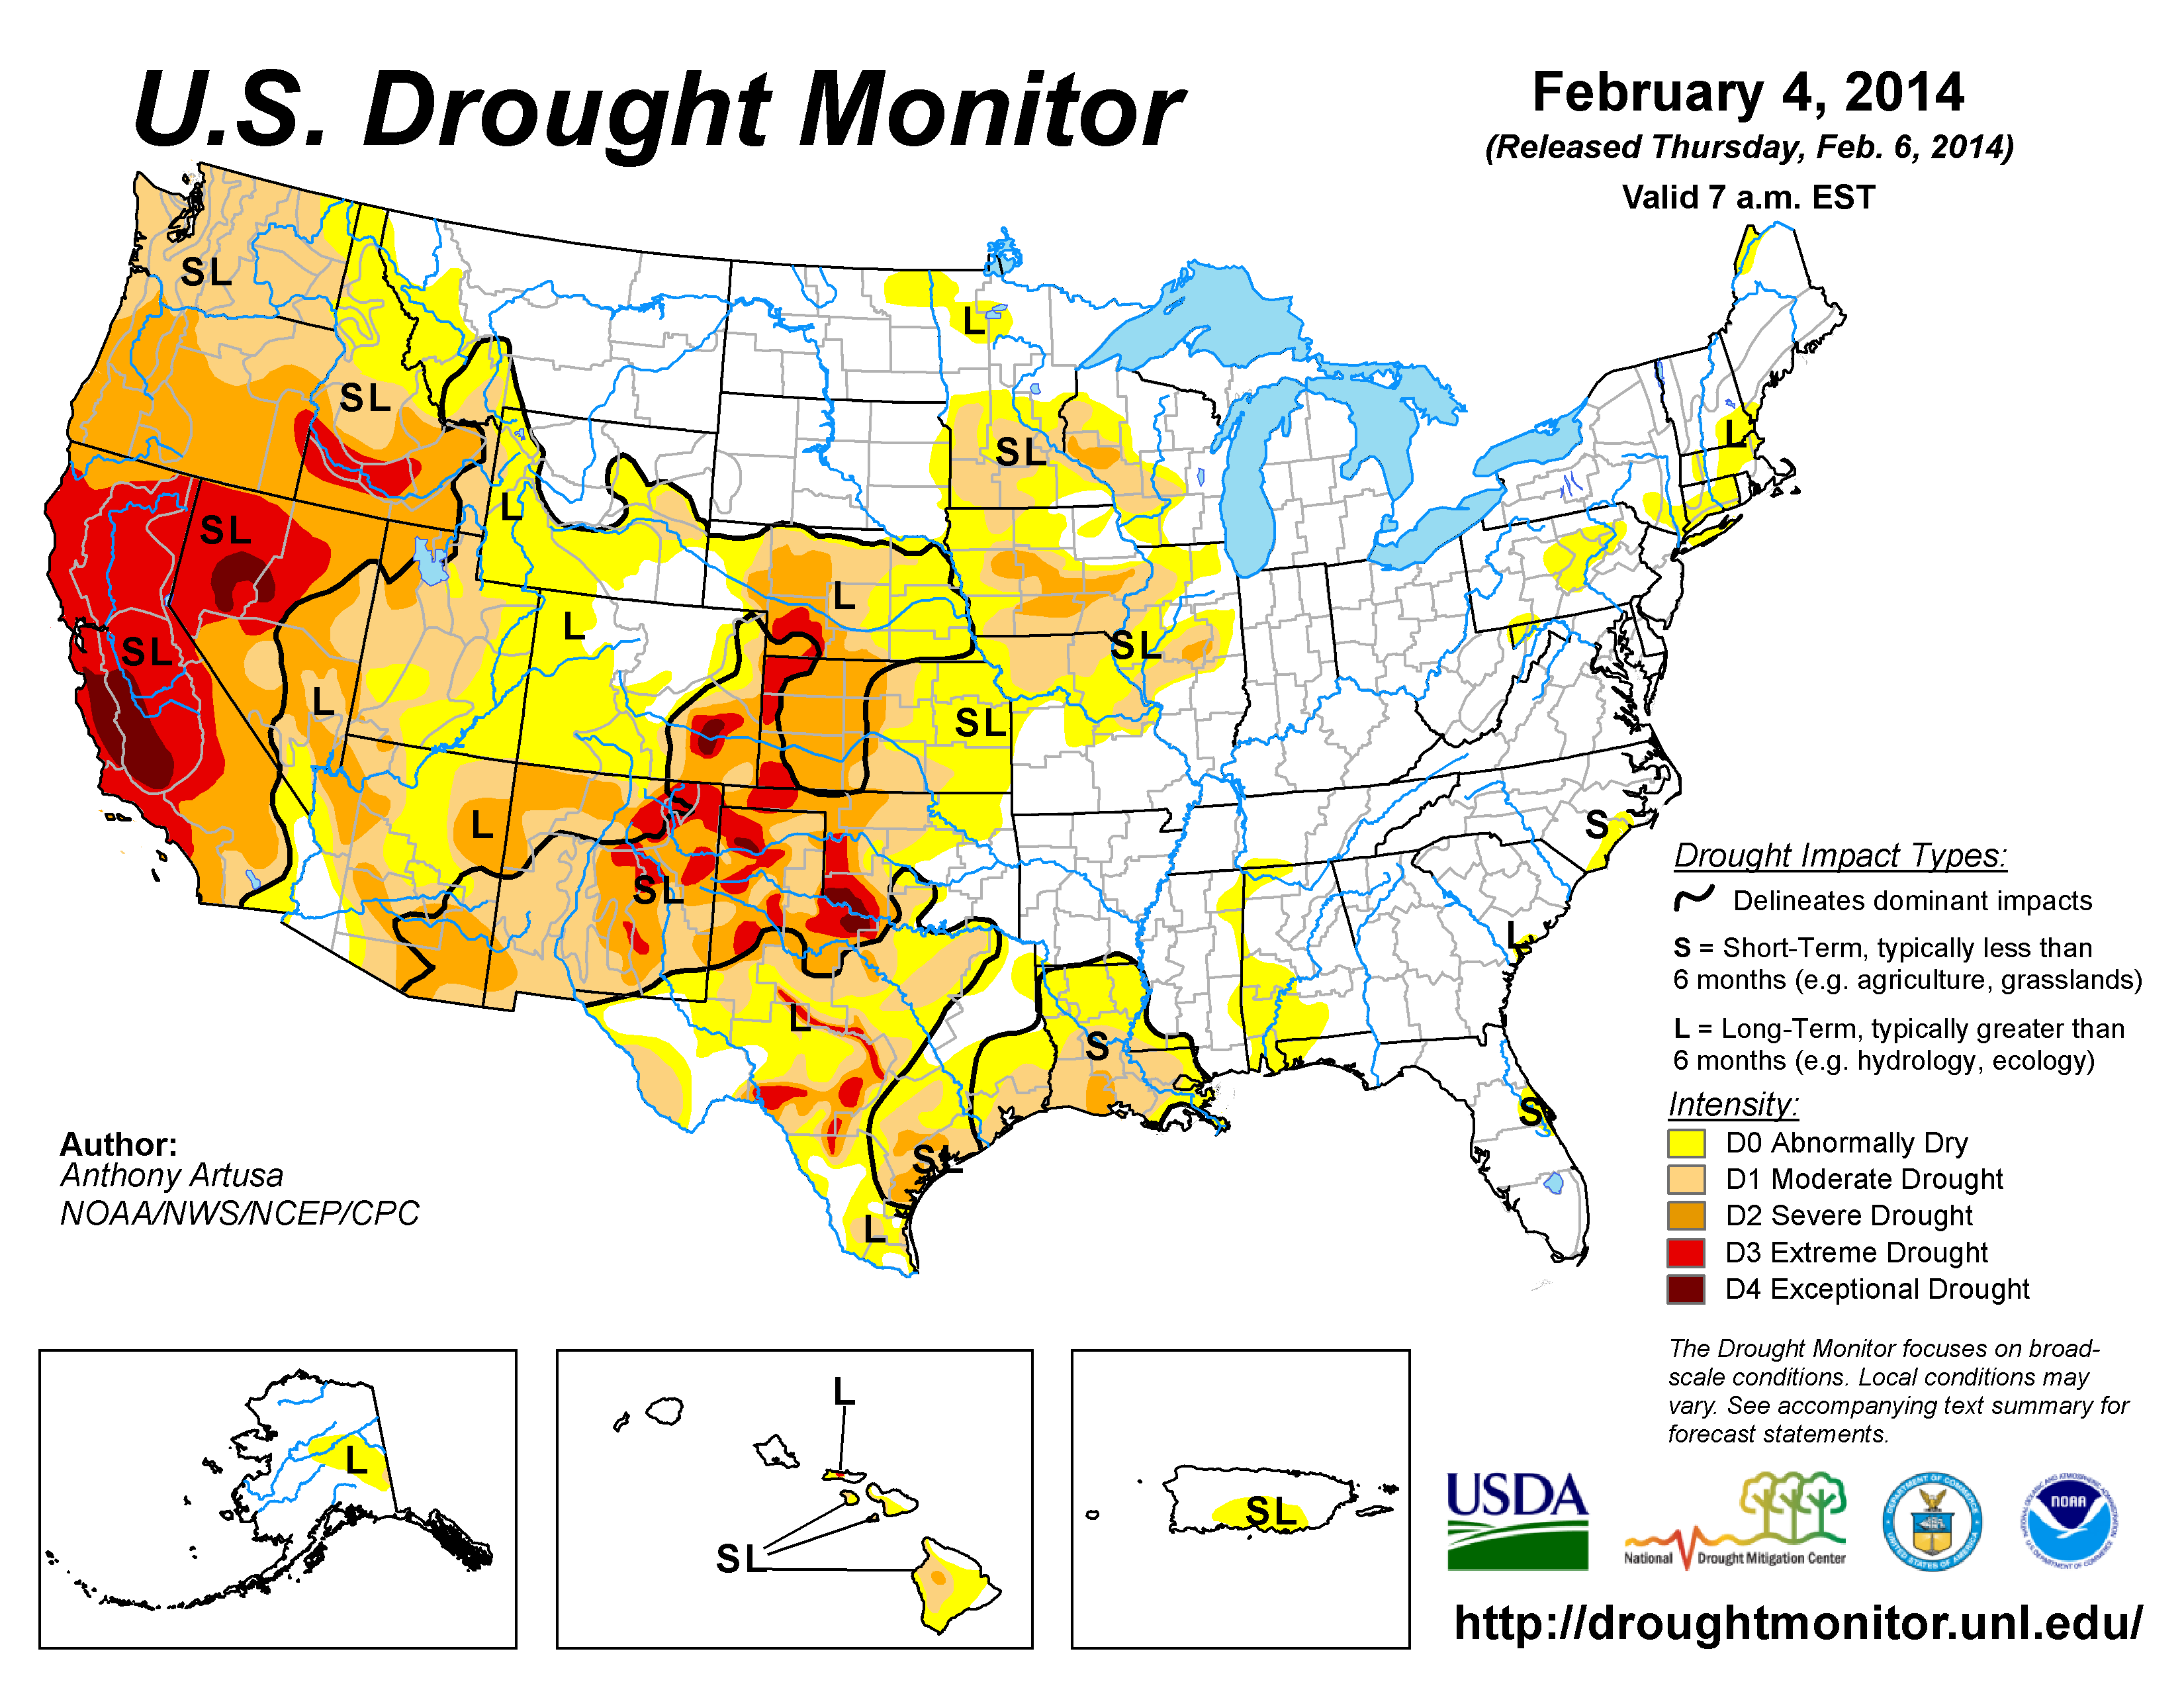 The U.S. Drought Monitor drought map valid February 4, 2014